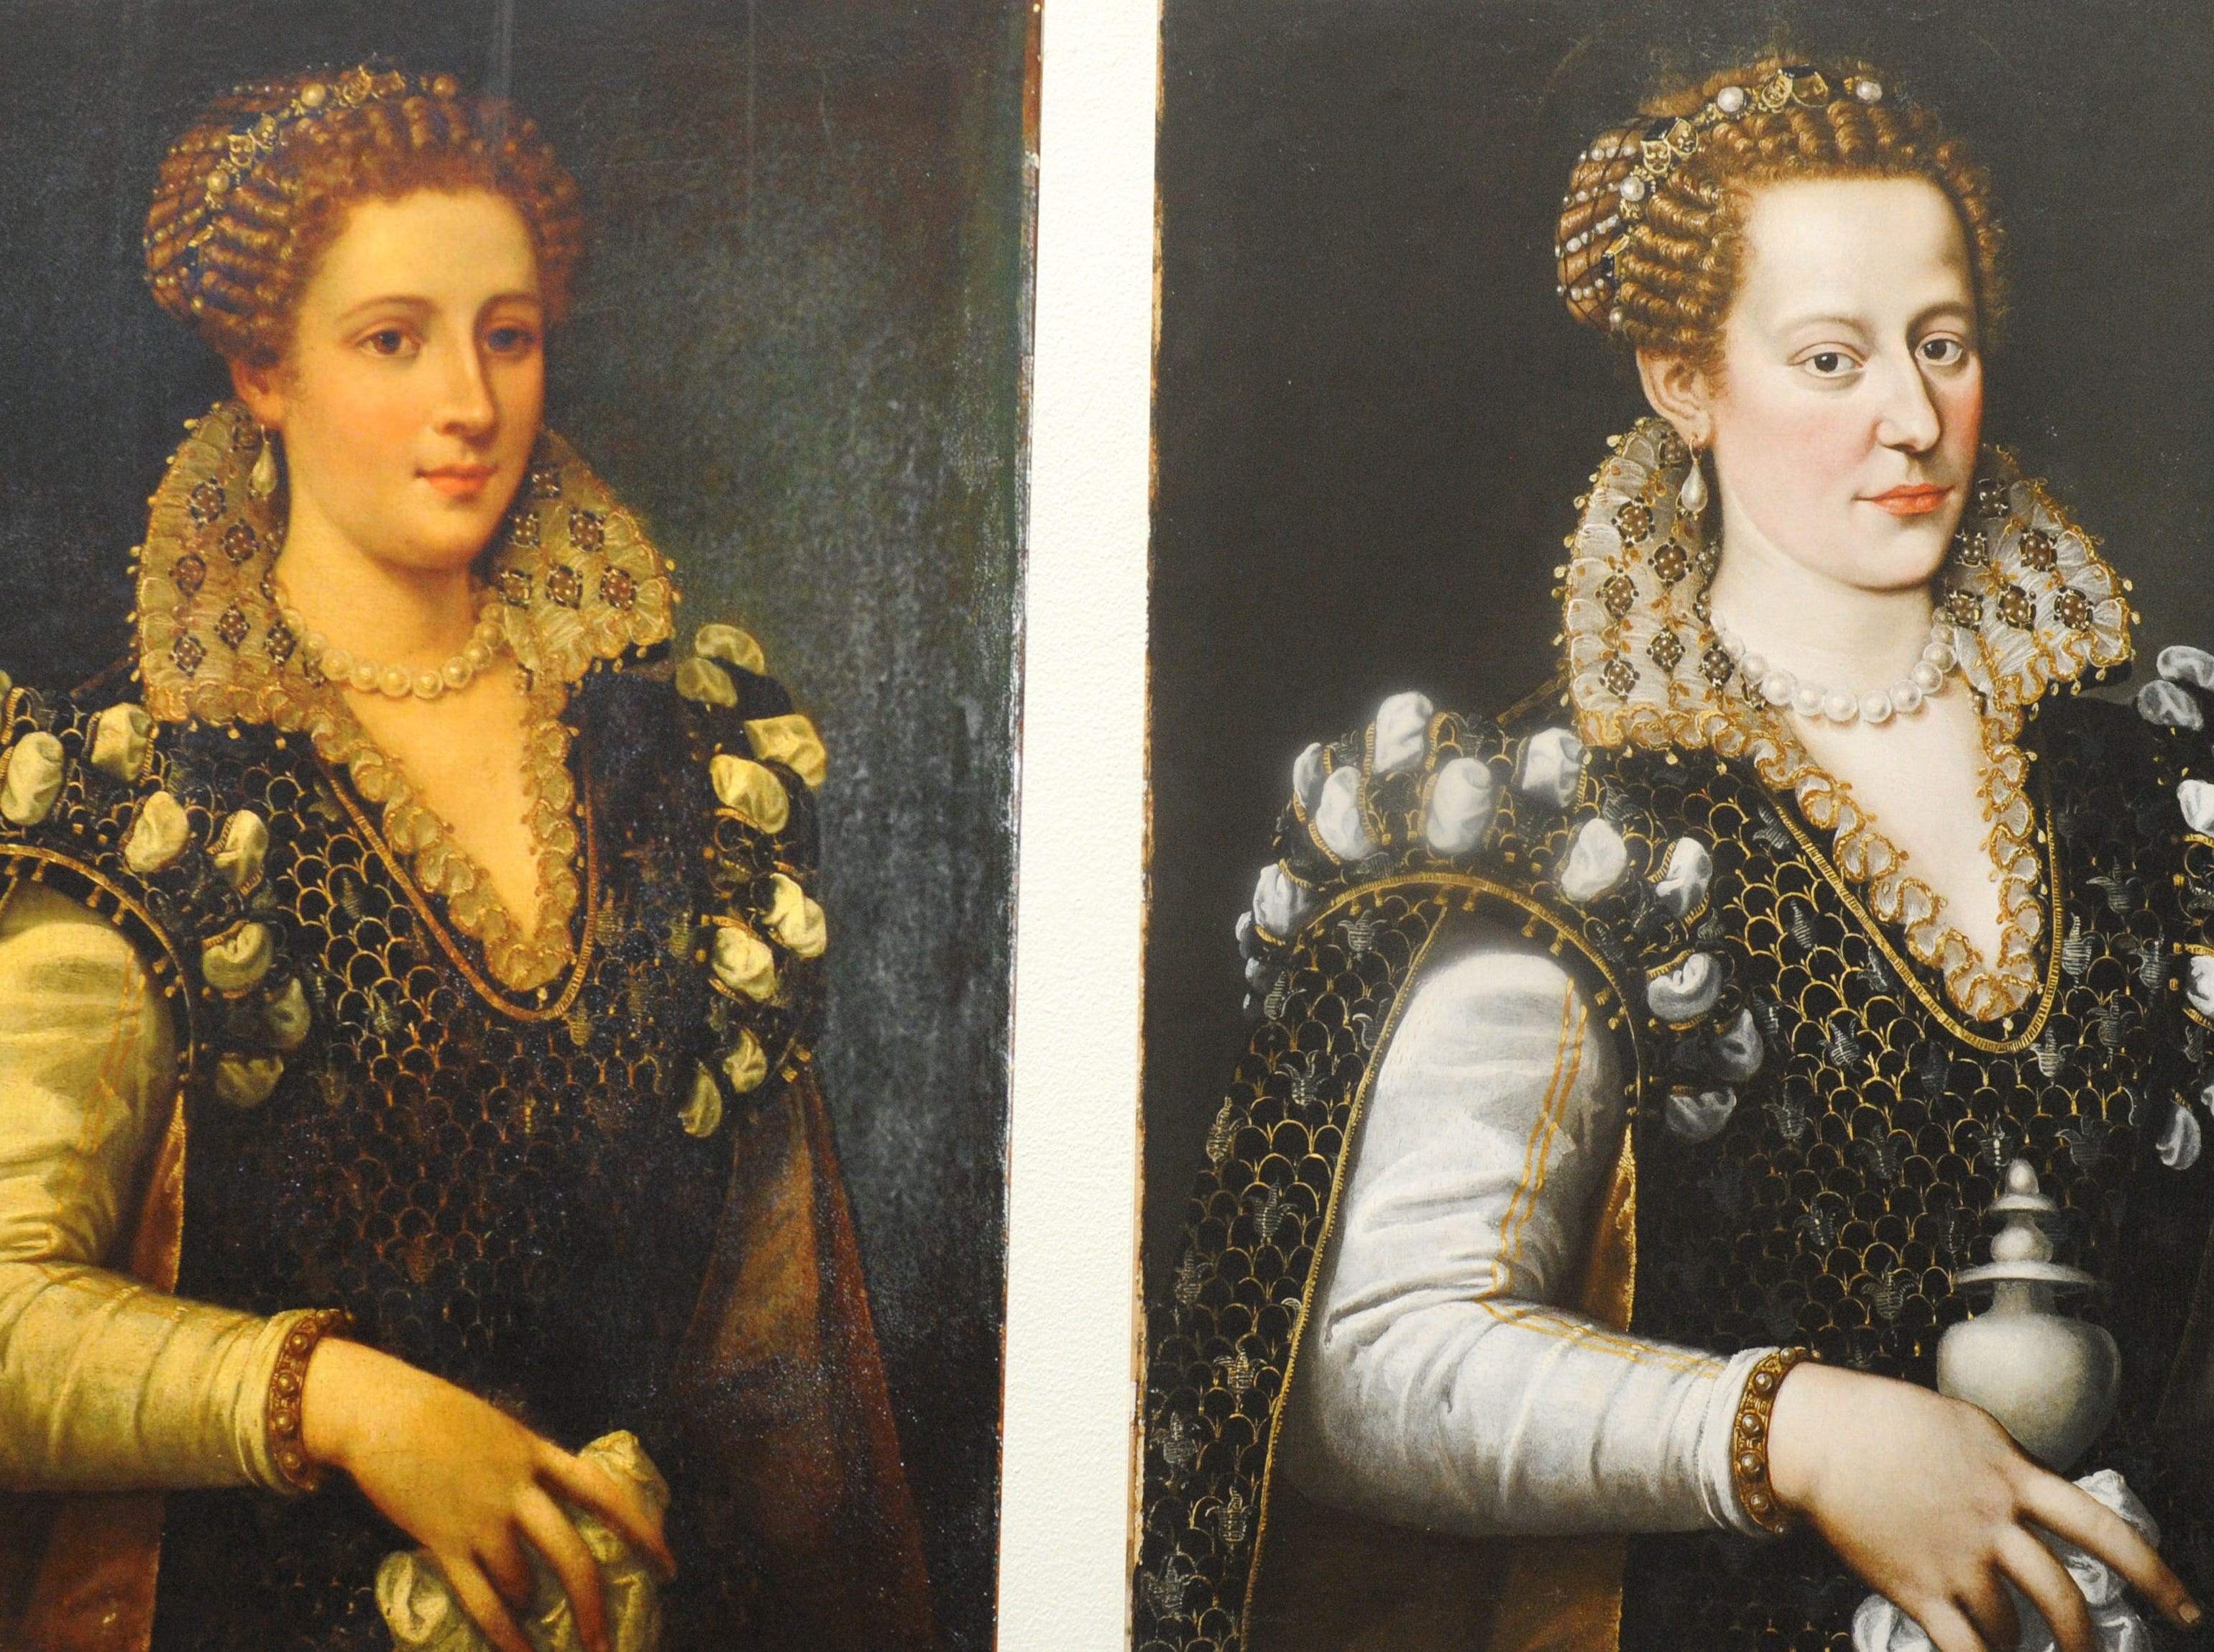 """A lost Princess, portrait of Isabella de' Medici,1535-1607 oil on canvas attributed to Alessandro Allori is part of the exhibit, """"Traces: Revealing Secrets in Art and History."""" The painting on the left was altered. A class called """"Chemical Investigations of Art"""" is linked to the exhibit and will look at how art has been manipulated and distorted."""